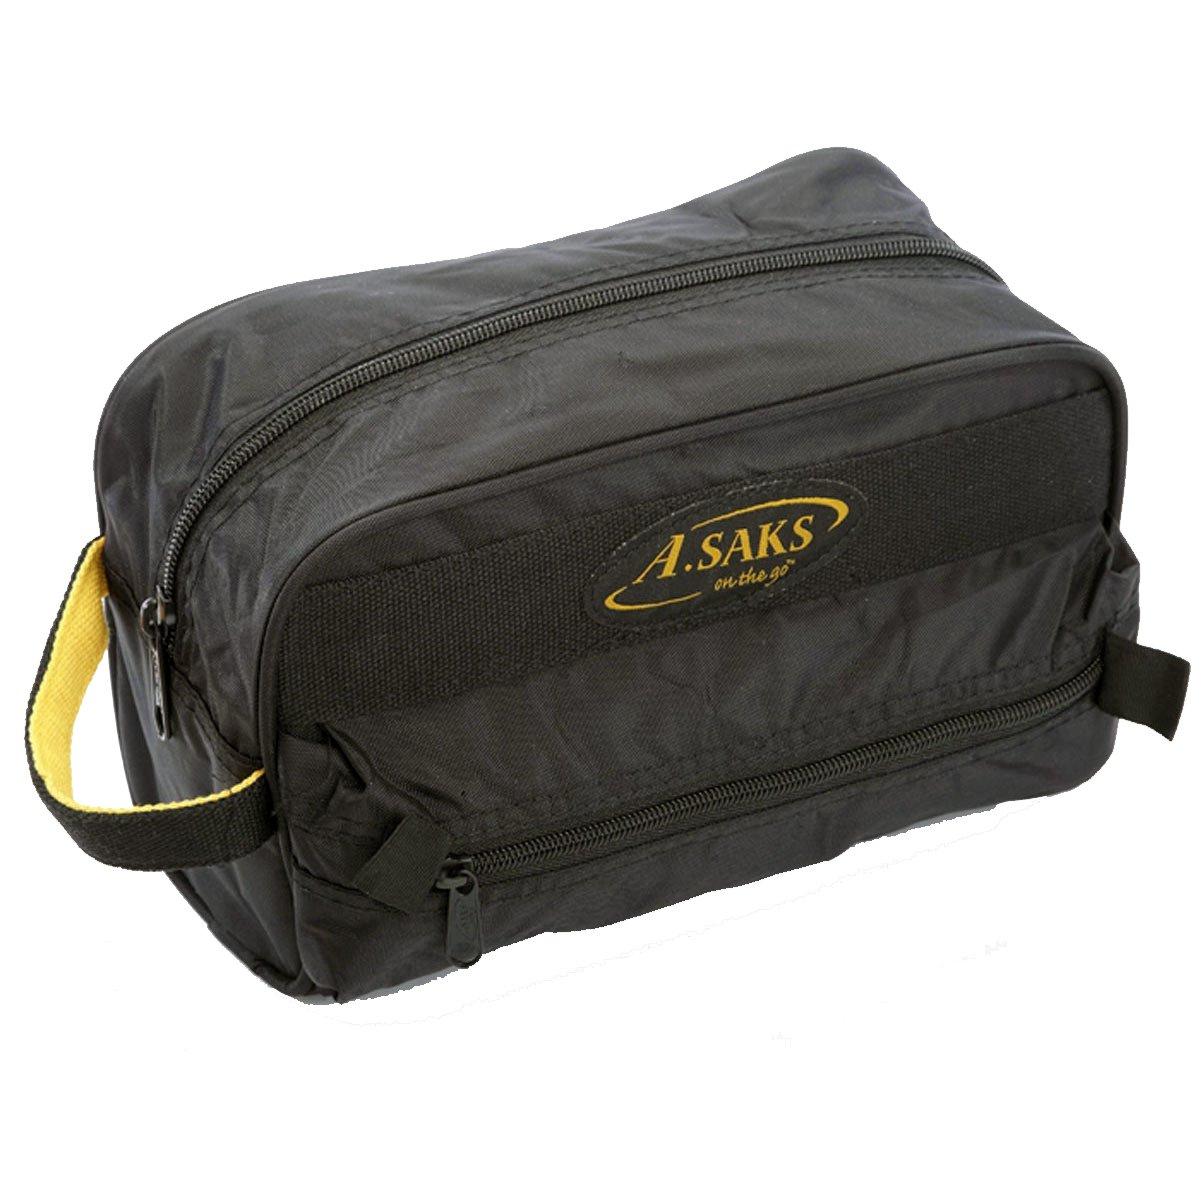 "Asaks AE-11 11"" x 7"" x 4"" Deluxe Toiletry Kit"